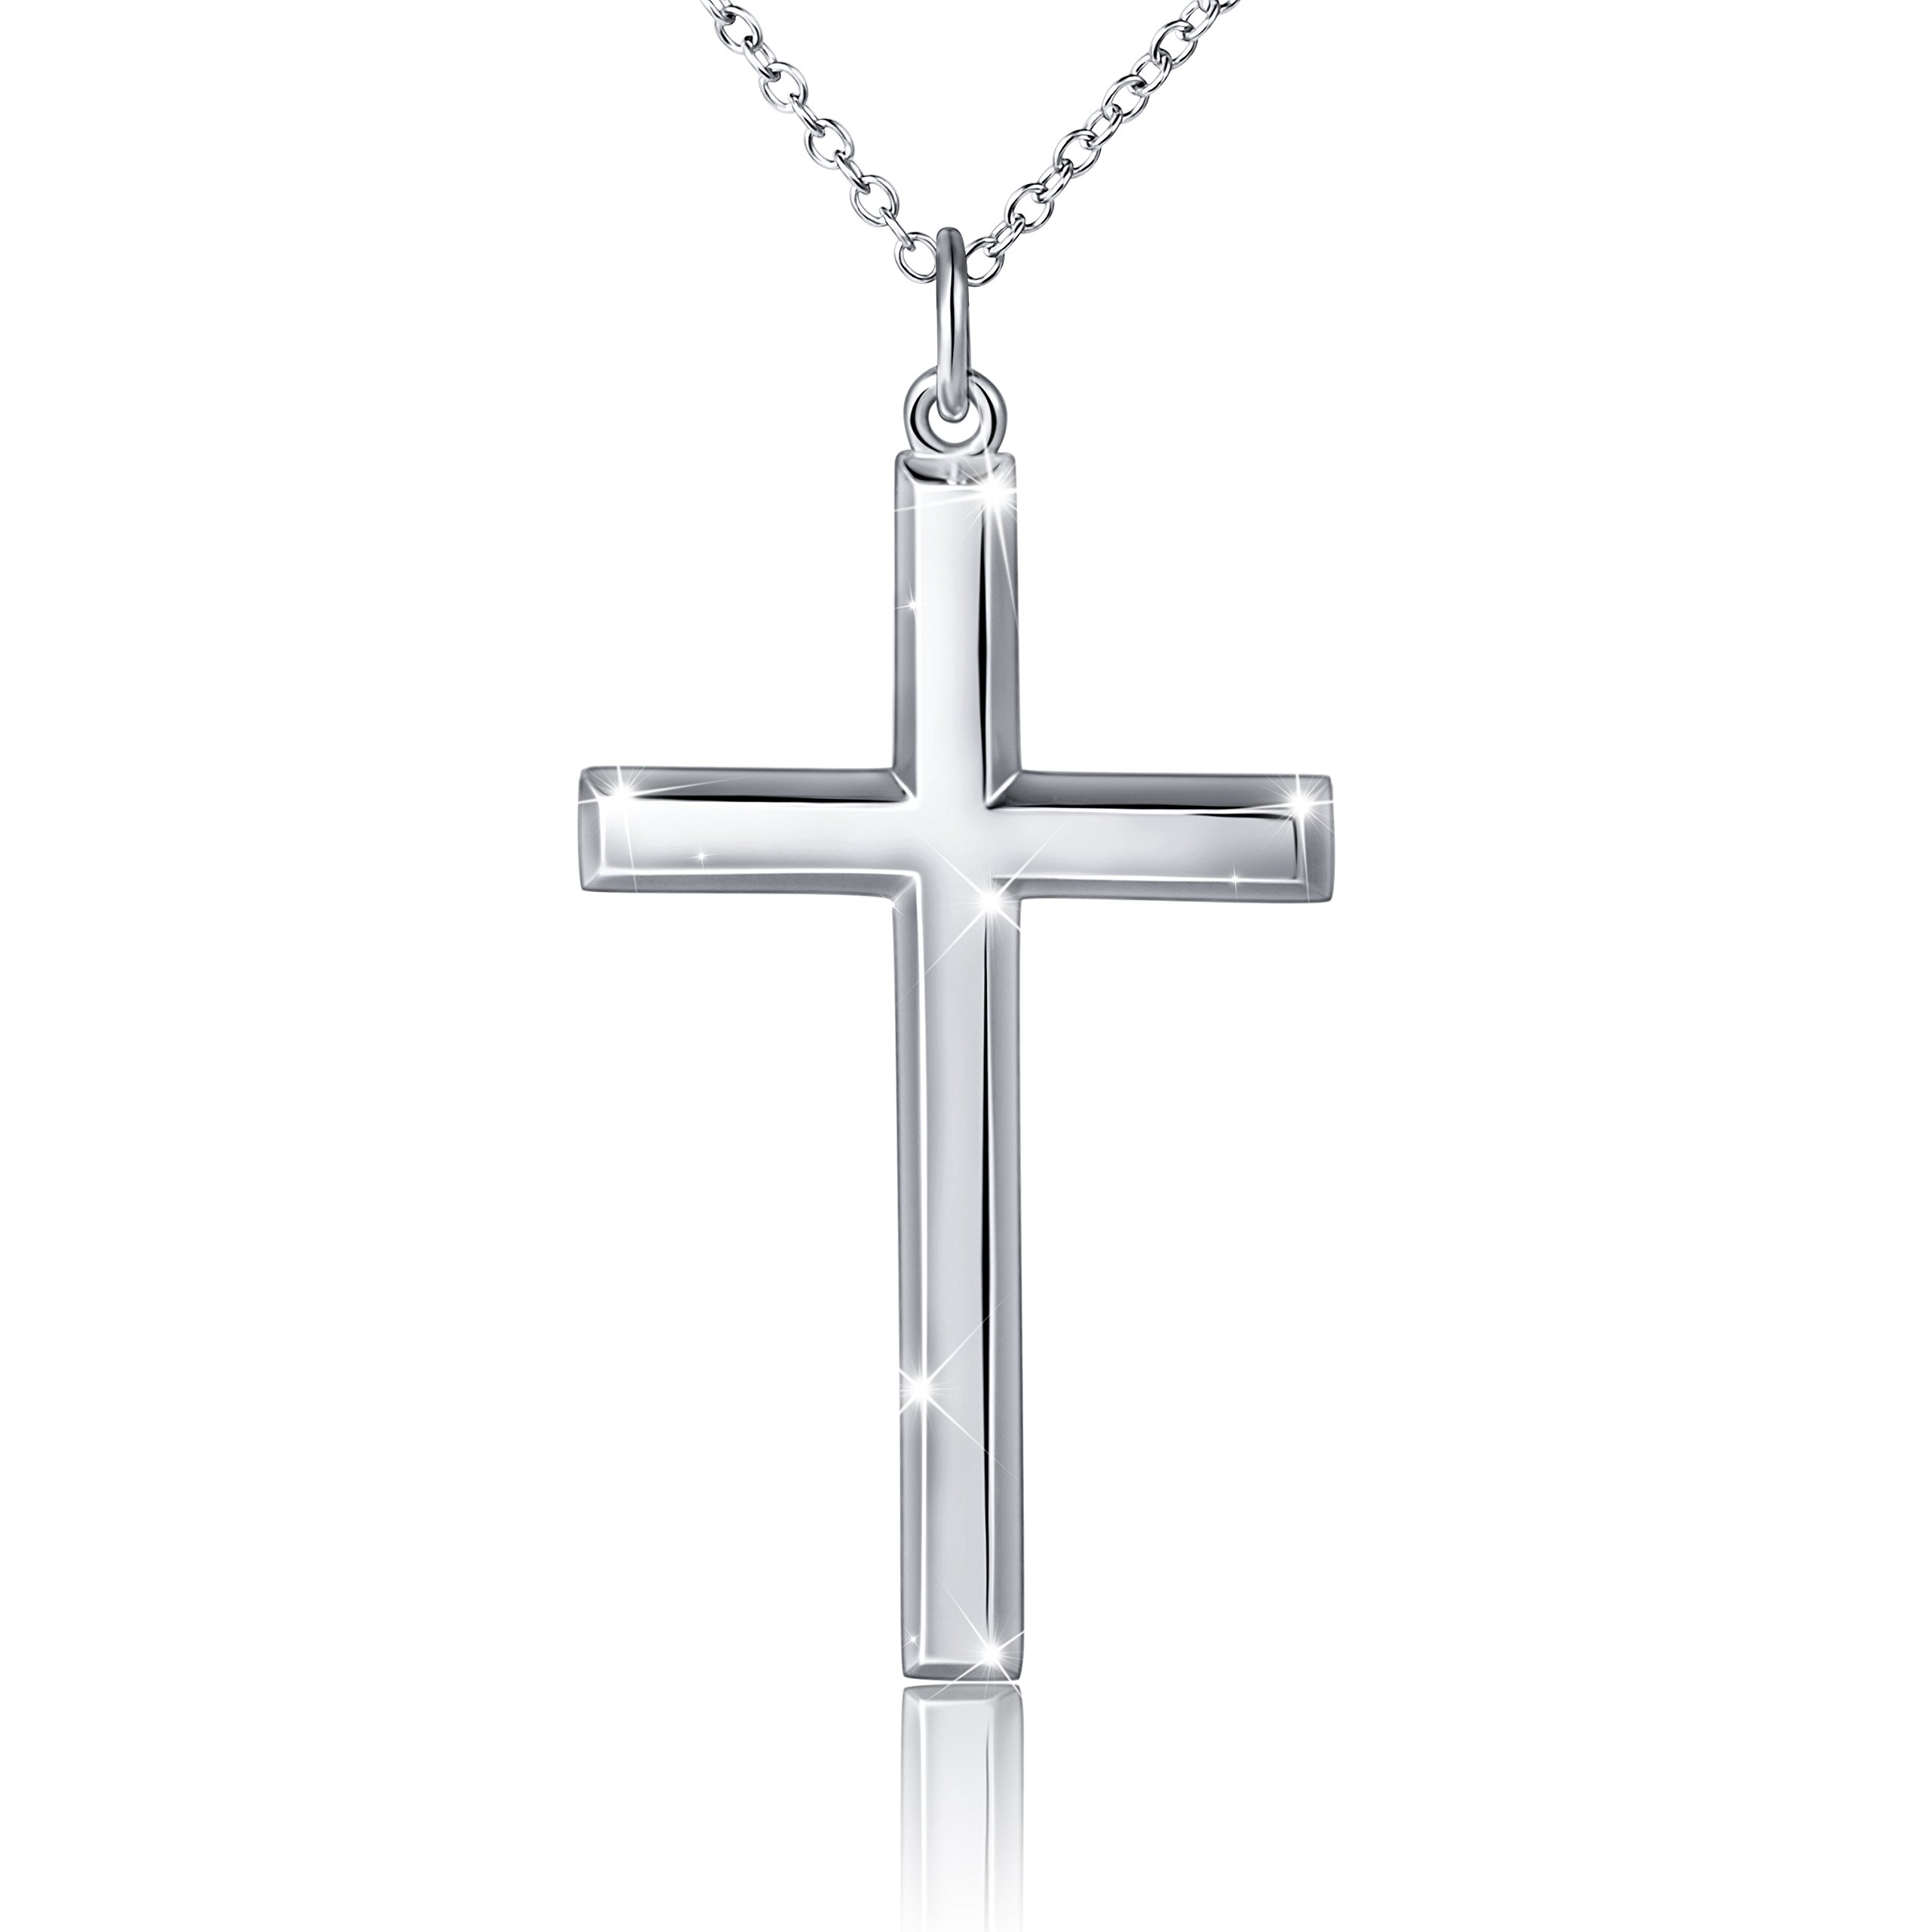 Men's S925 Sterling Silver Classic Cross Pendant Necklace 24'' Silver Chain